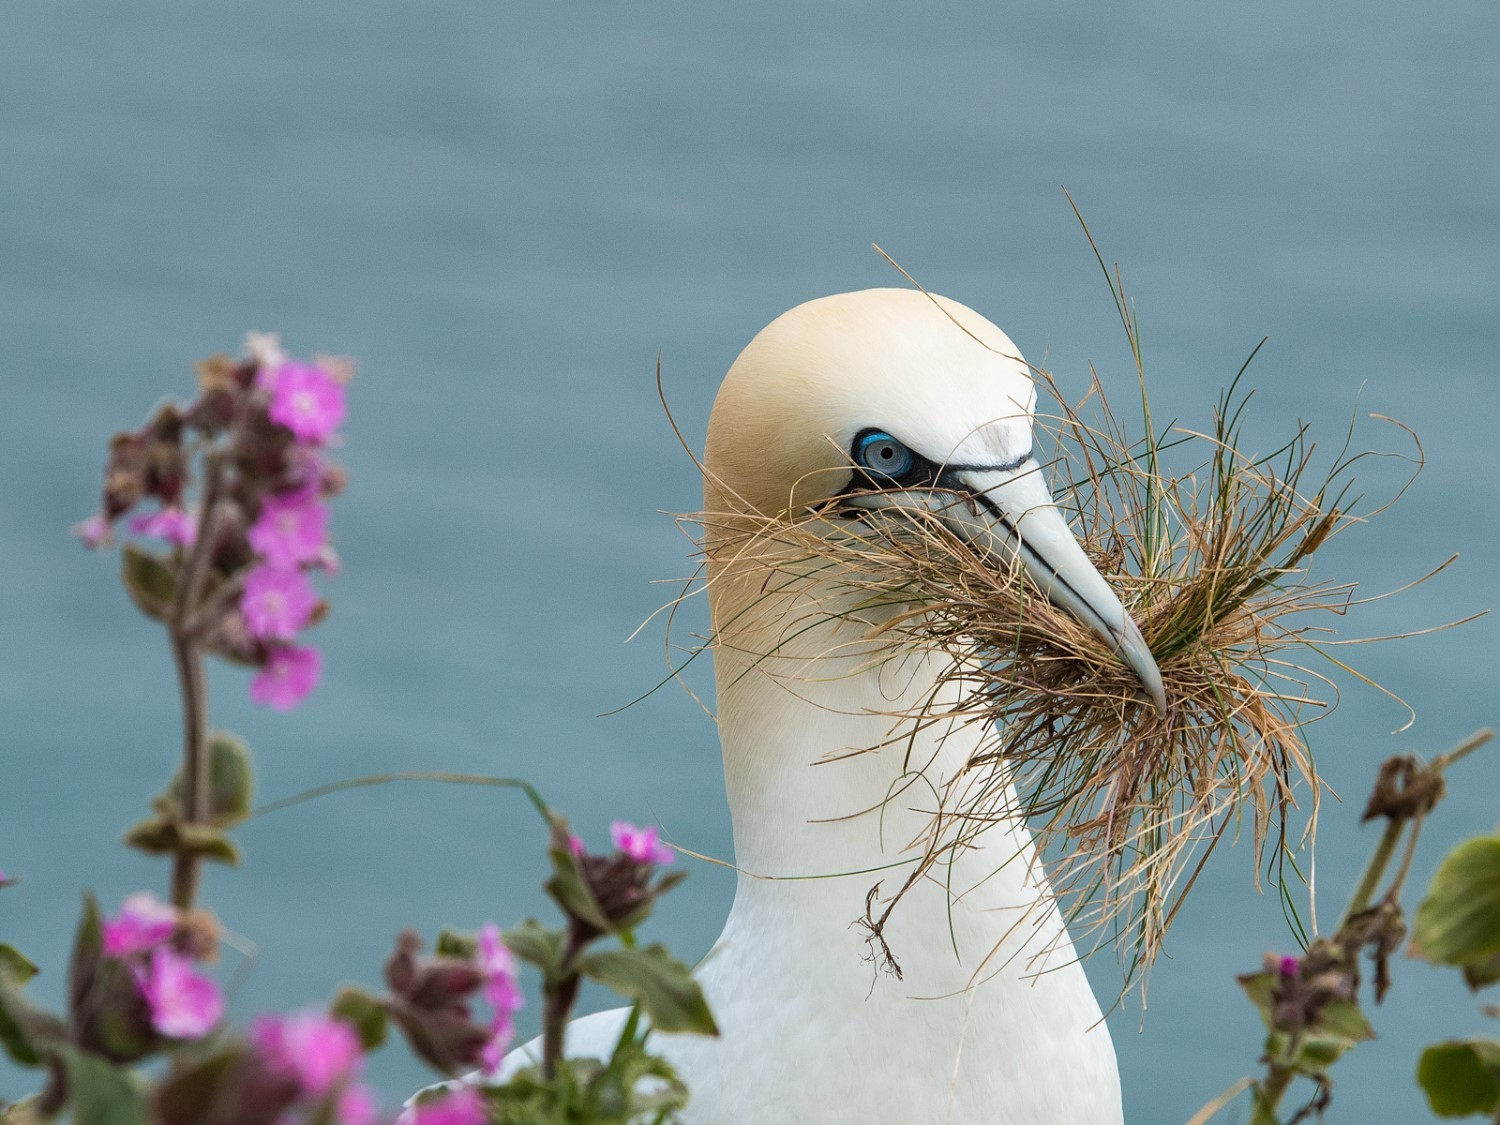 Gannet collecting nesting materials